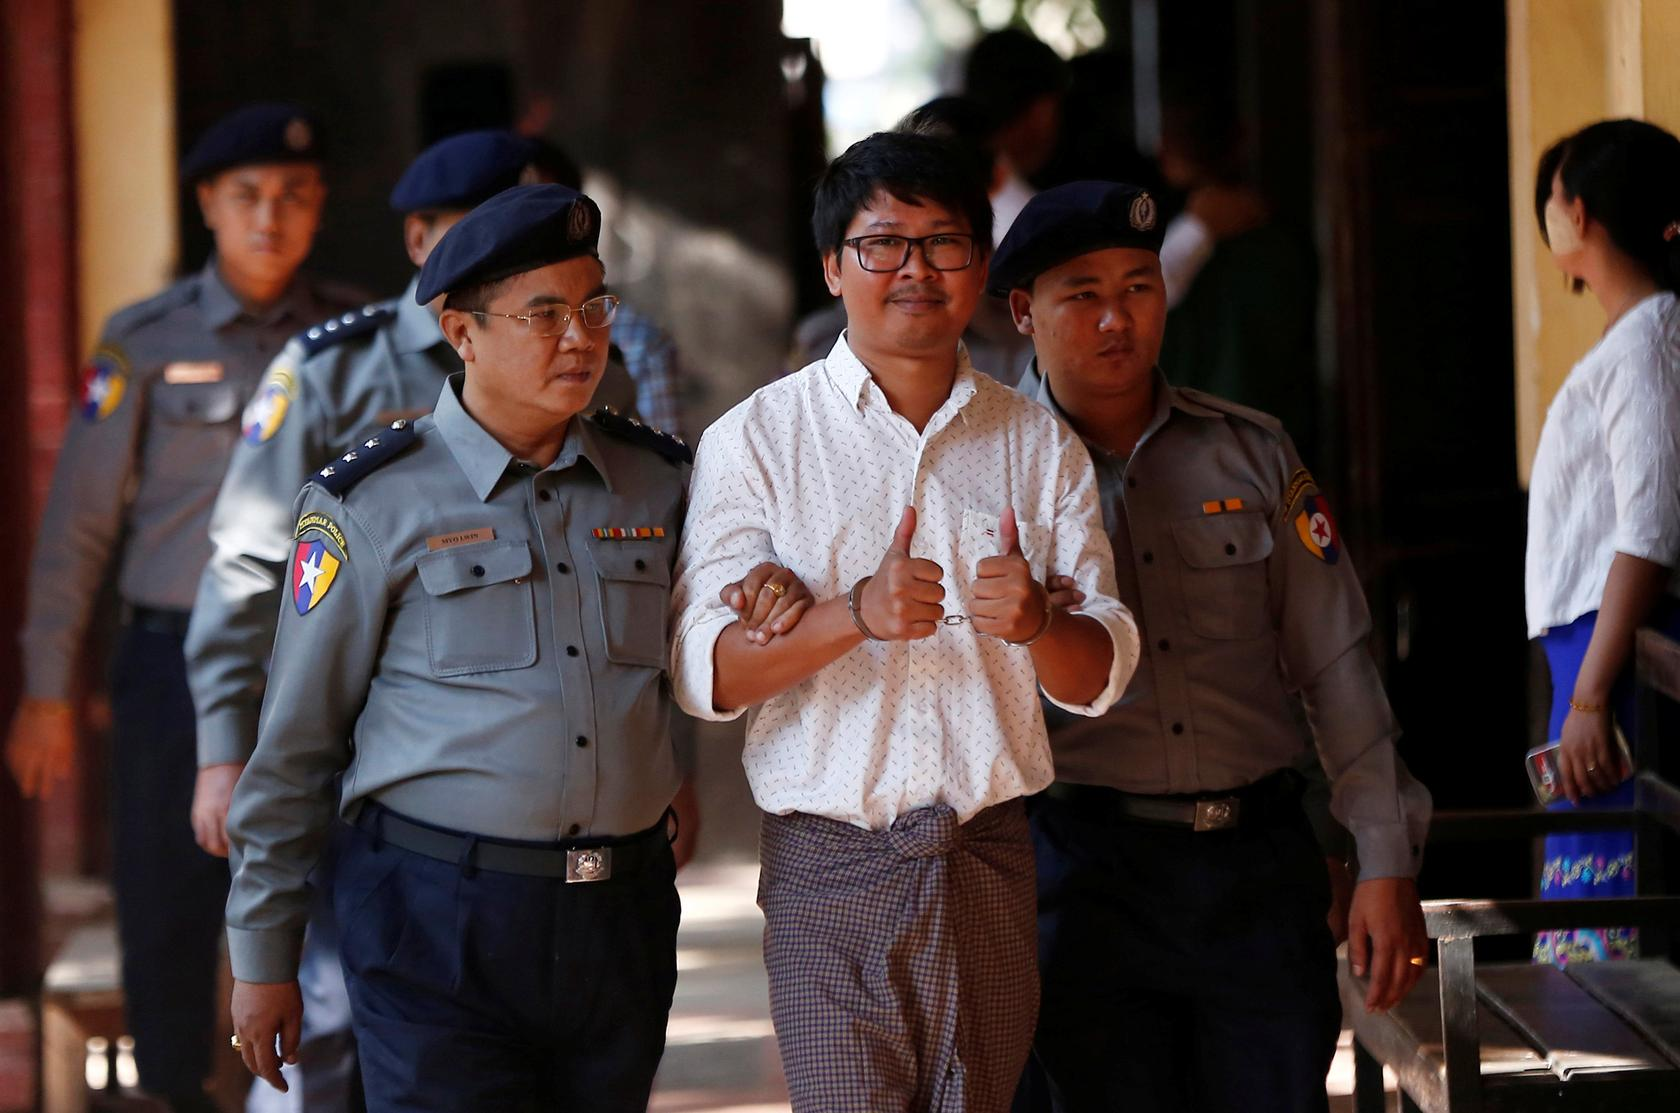 a6c91b2f400a Myanmar policeman who arrested Reuters reporters tells court he burned his  notes